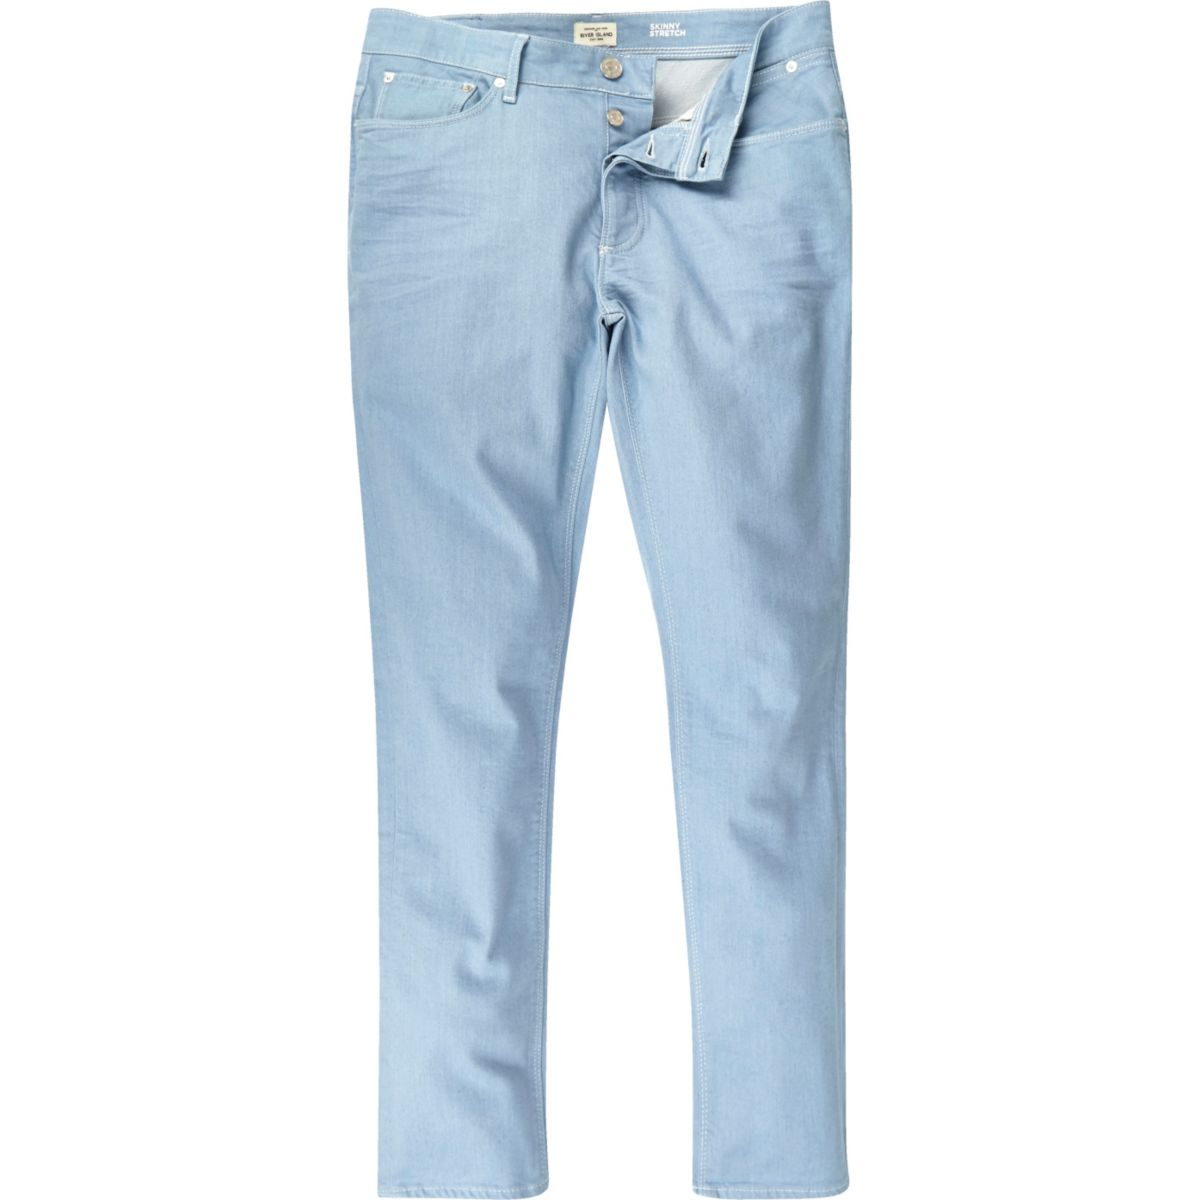 Light blue wash Sid skinny stretch jeans